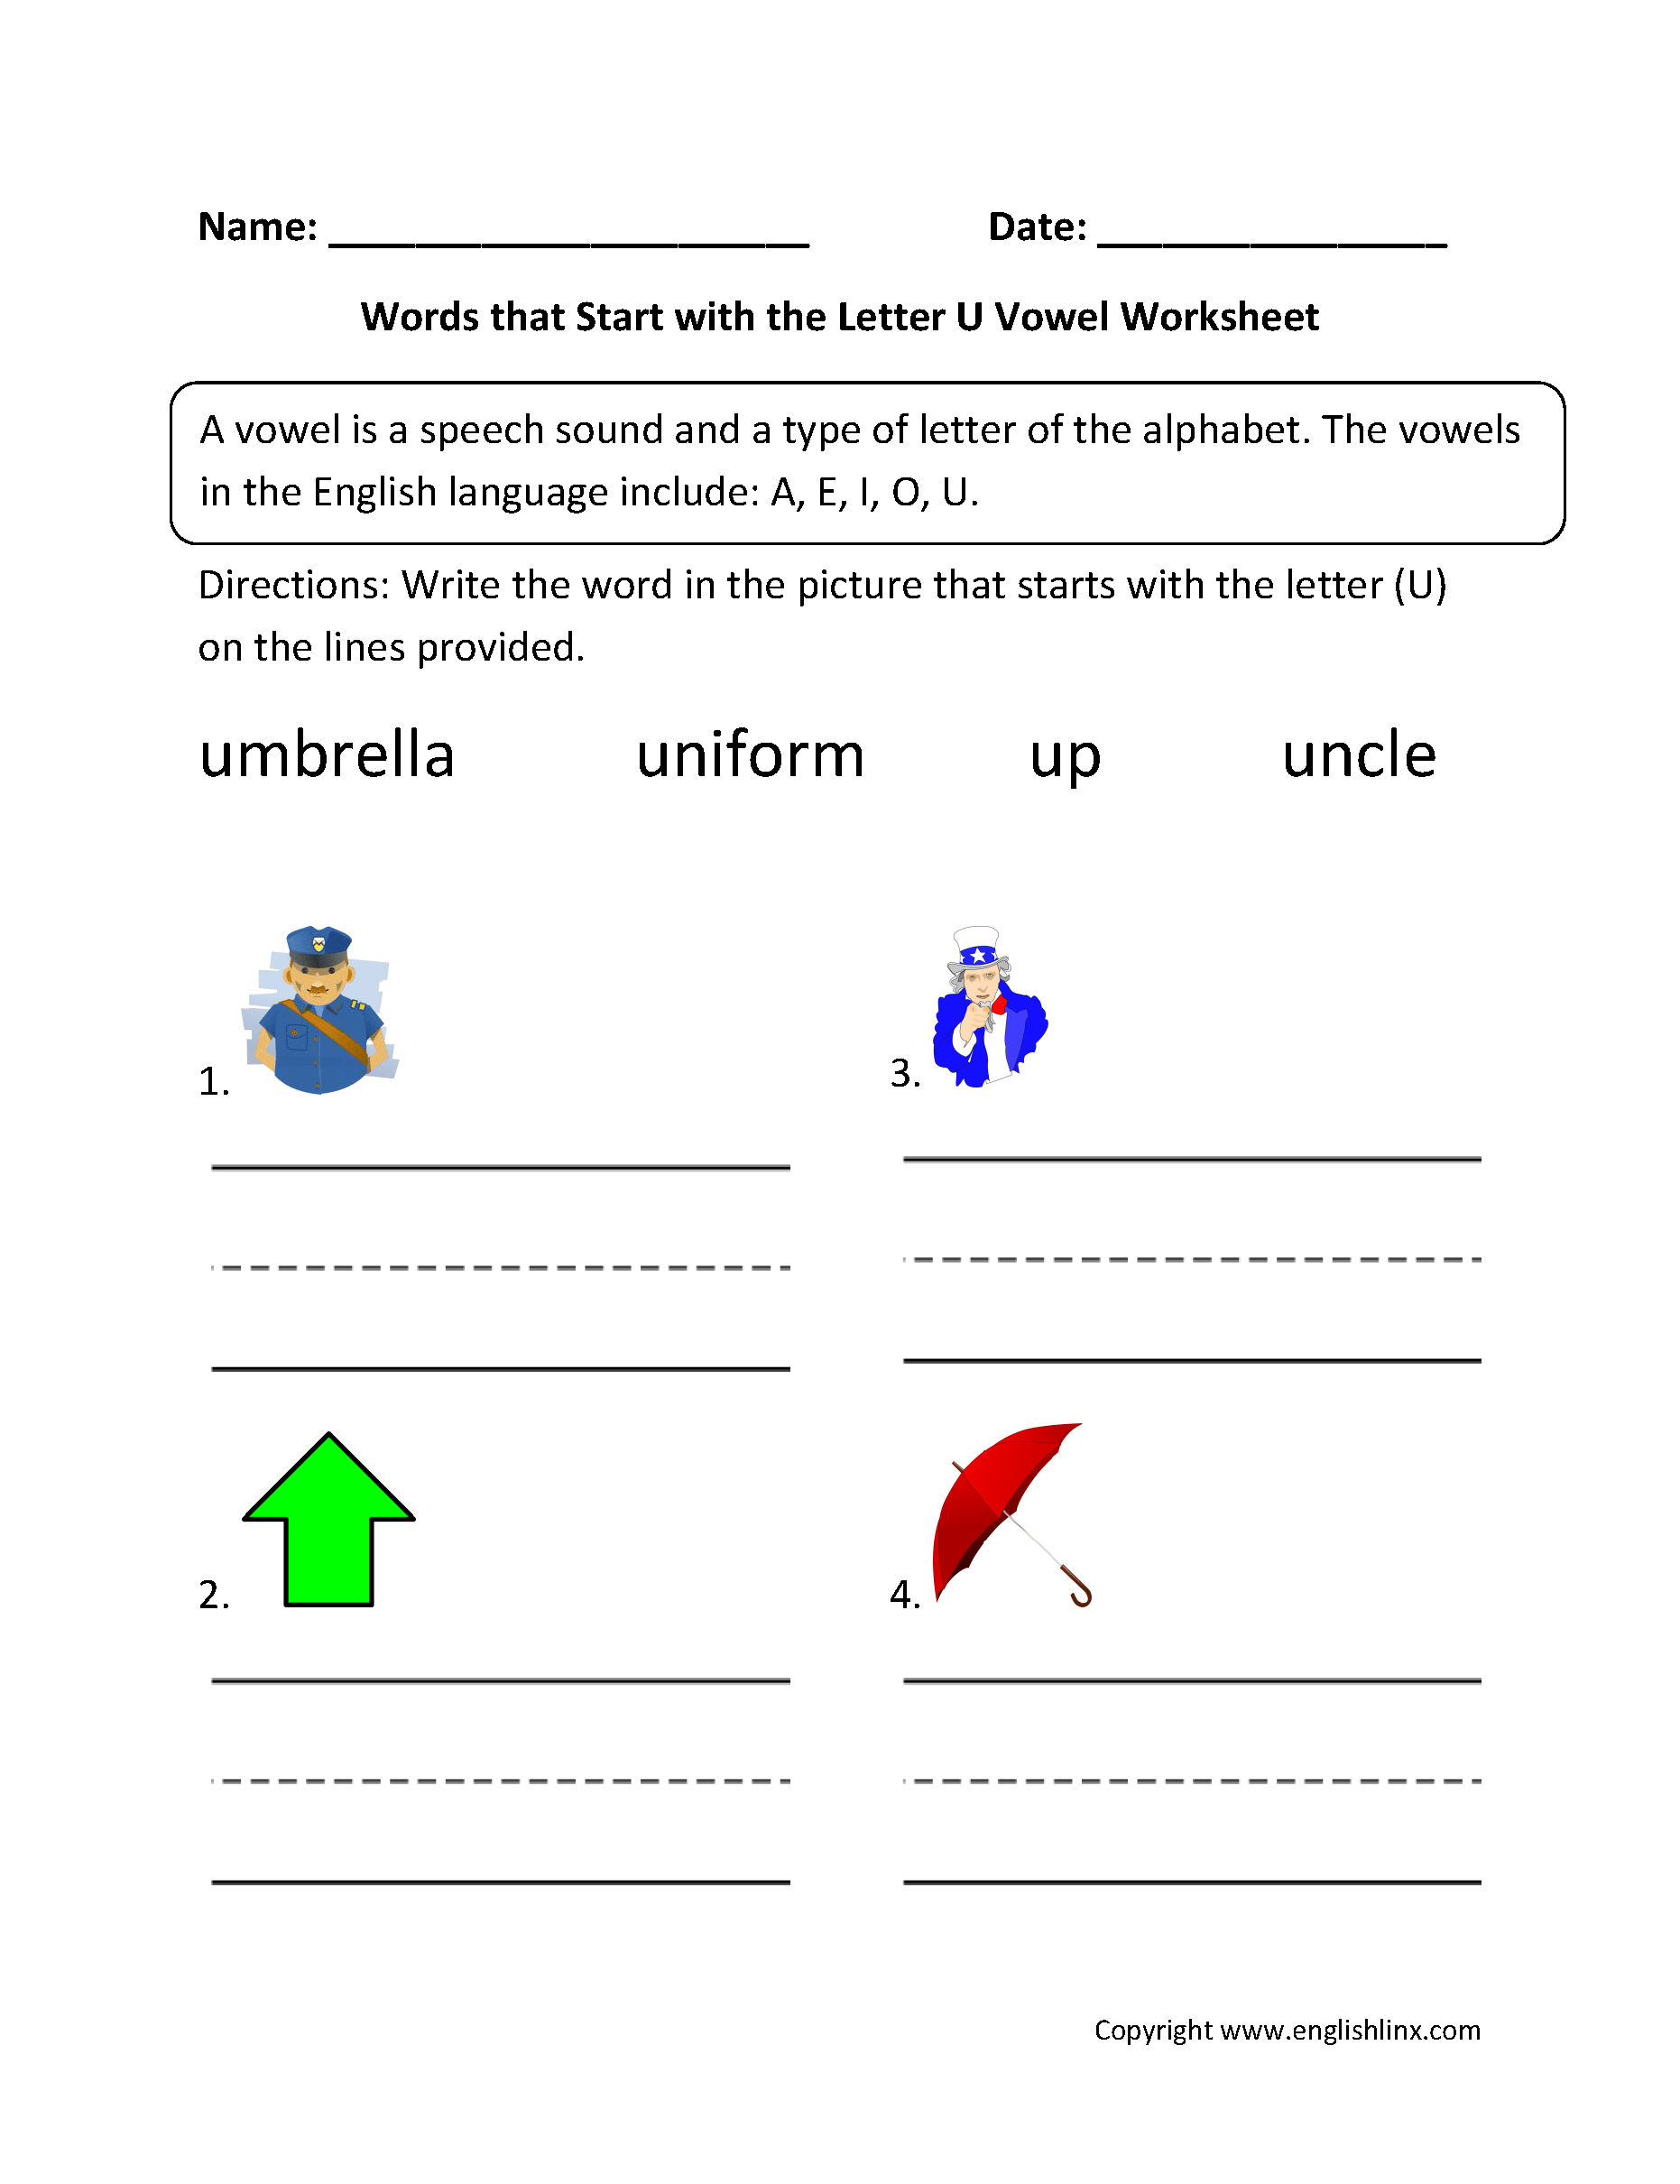 Words Start Letter U Vowel Worksheets